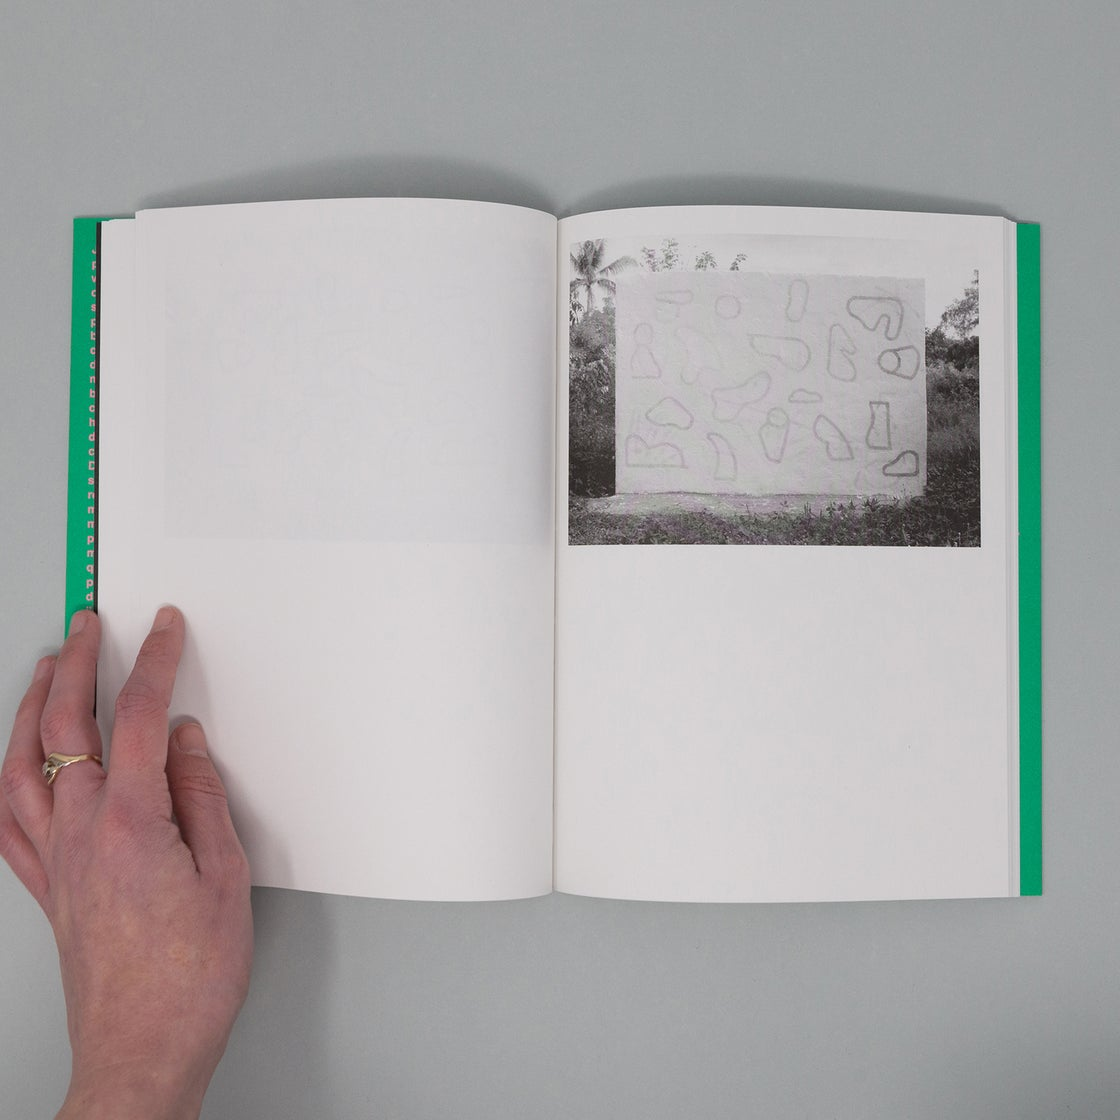 Image of Building a wall — a book by Roméo Julien